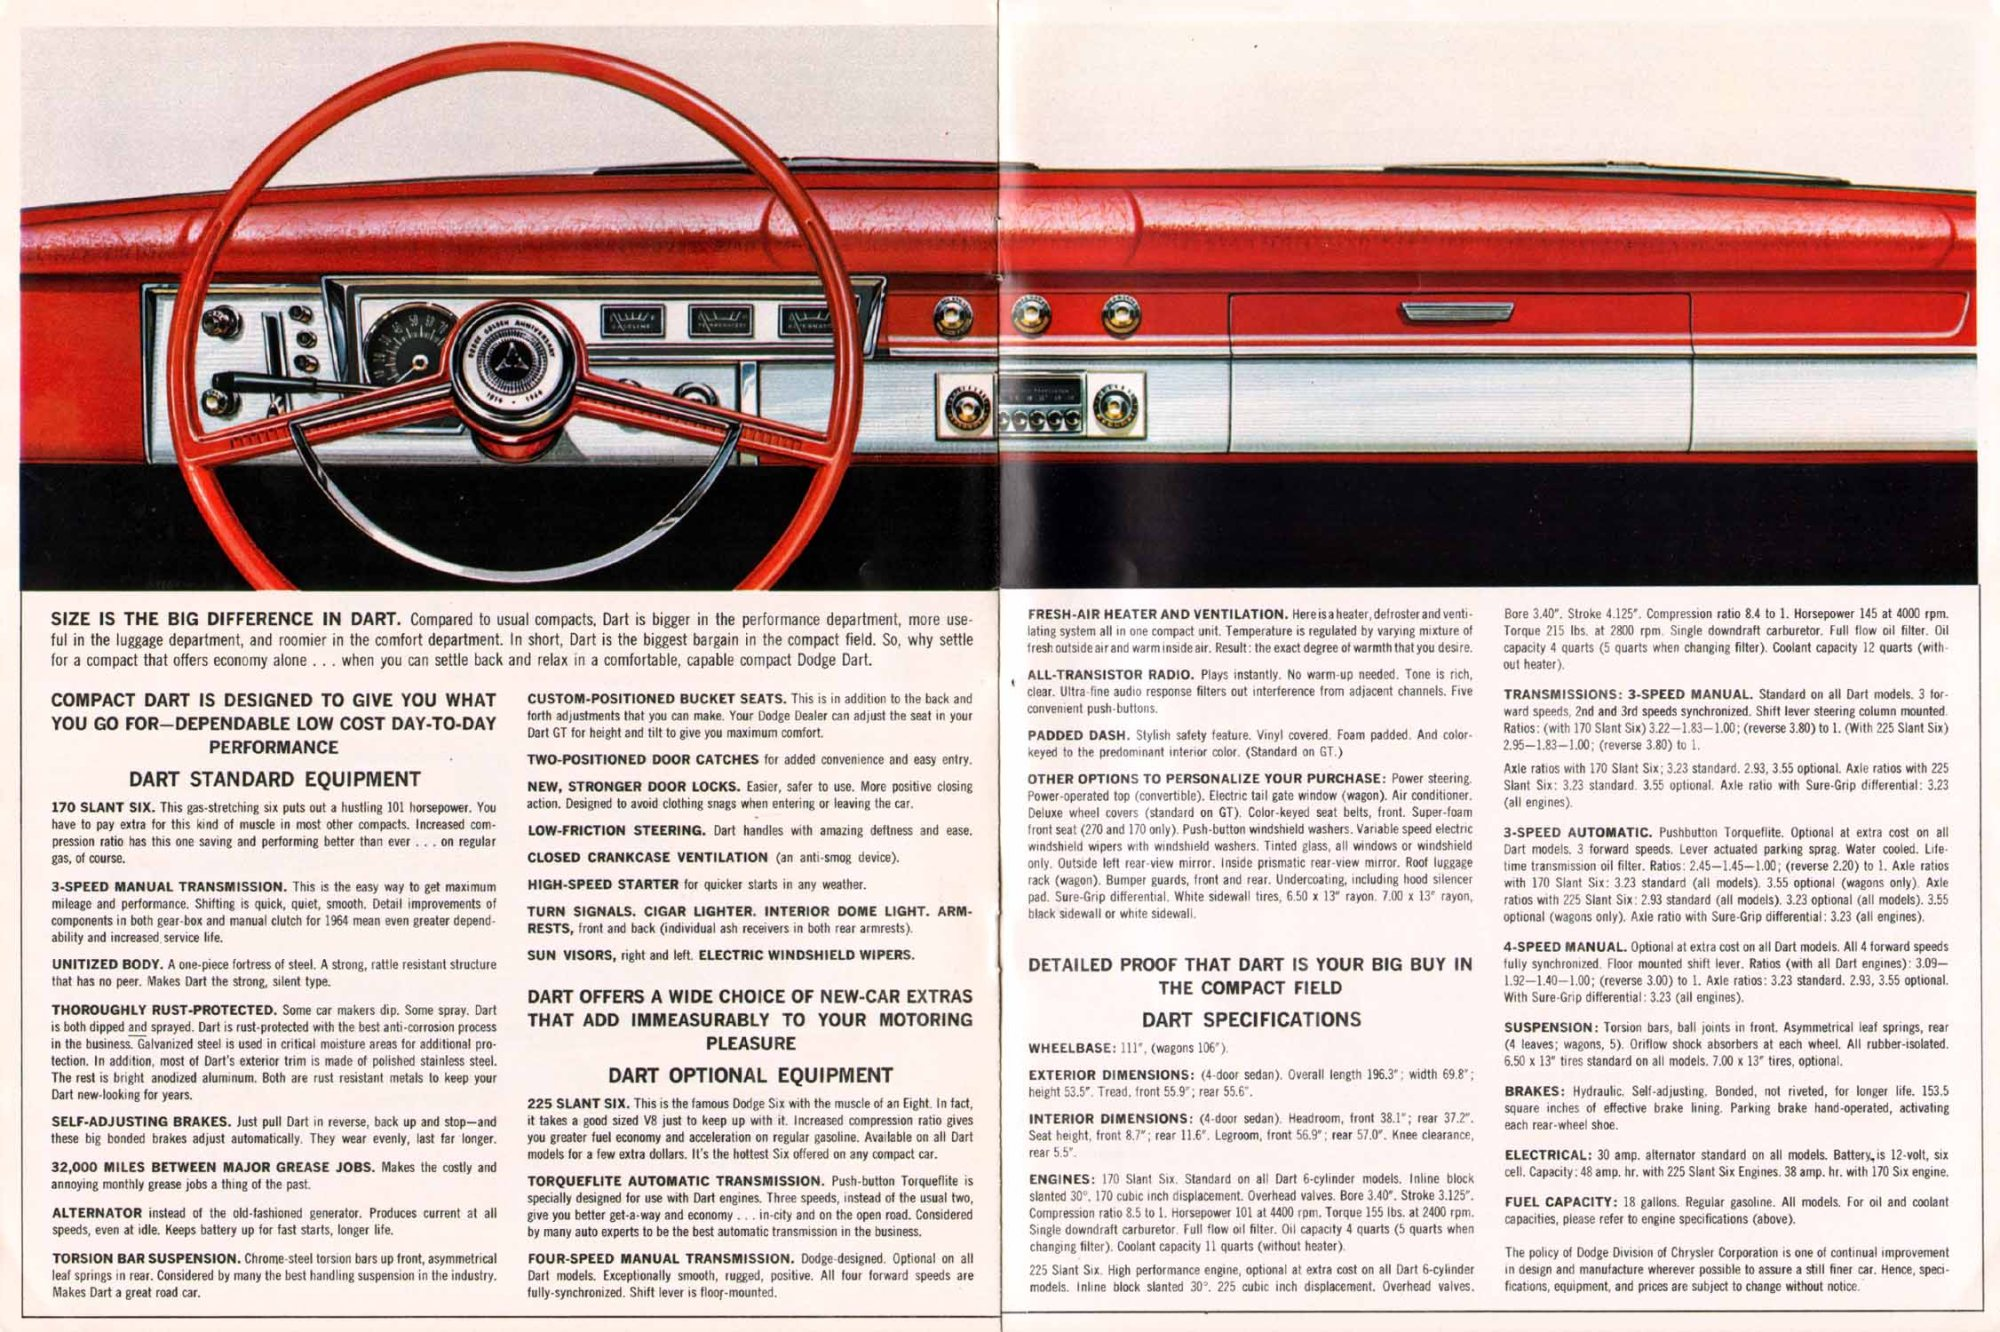 hight resolution of 1964 dodge dart brochure page 6